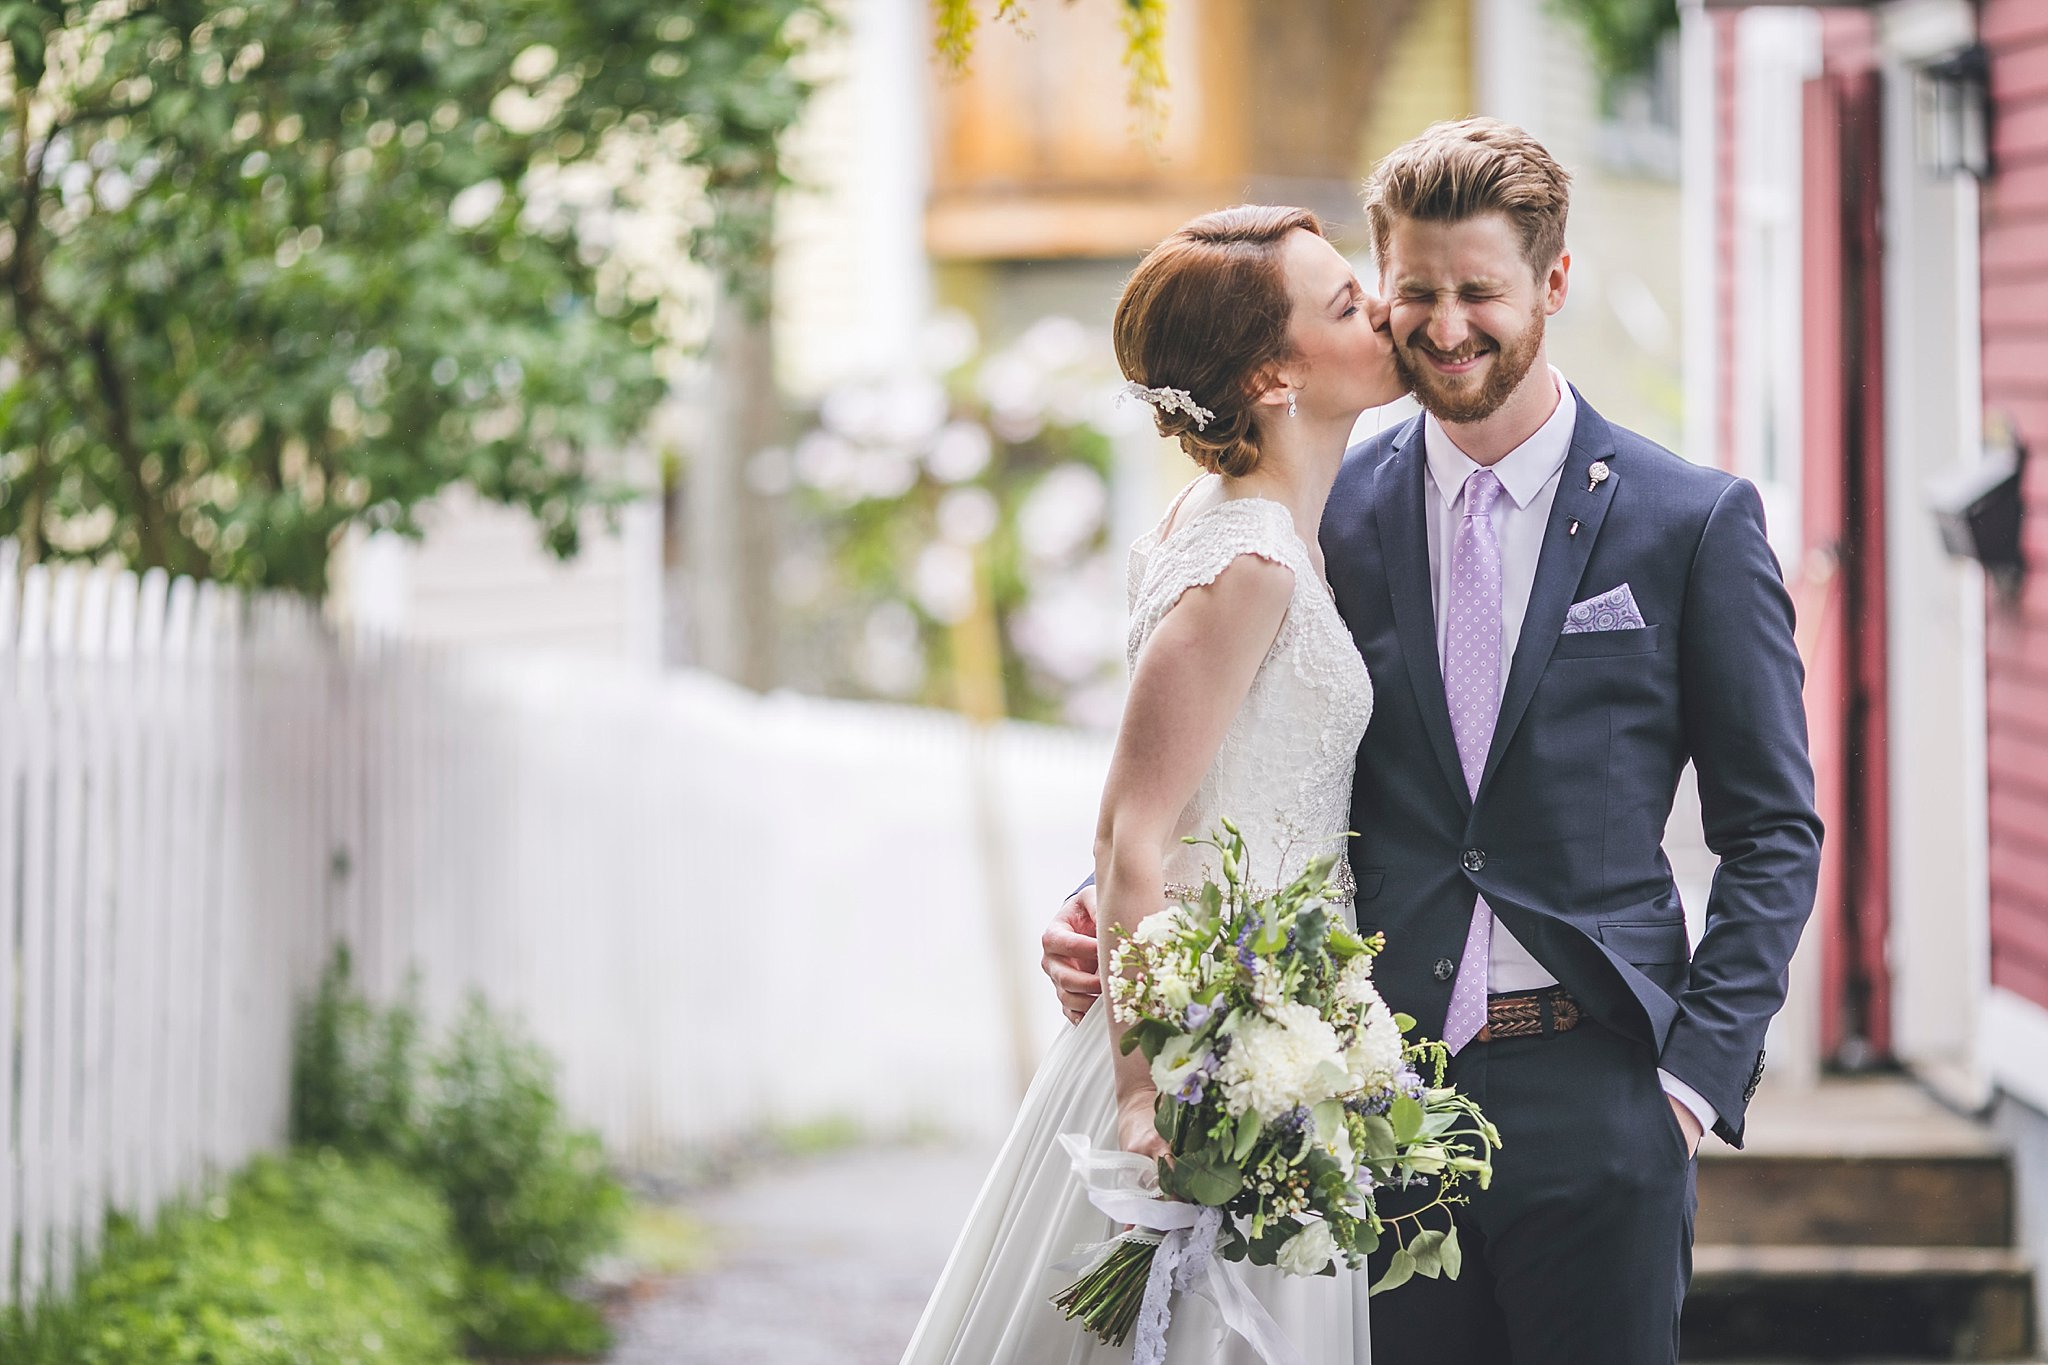 Bride and Groom have their wedding photography taken by St. John's Photographer JP Mullowney